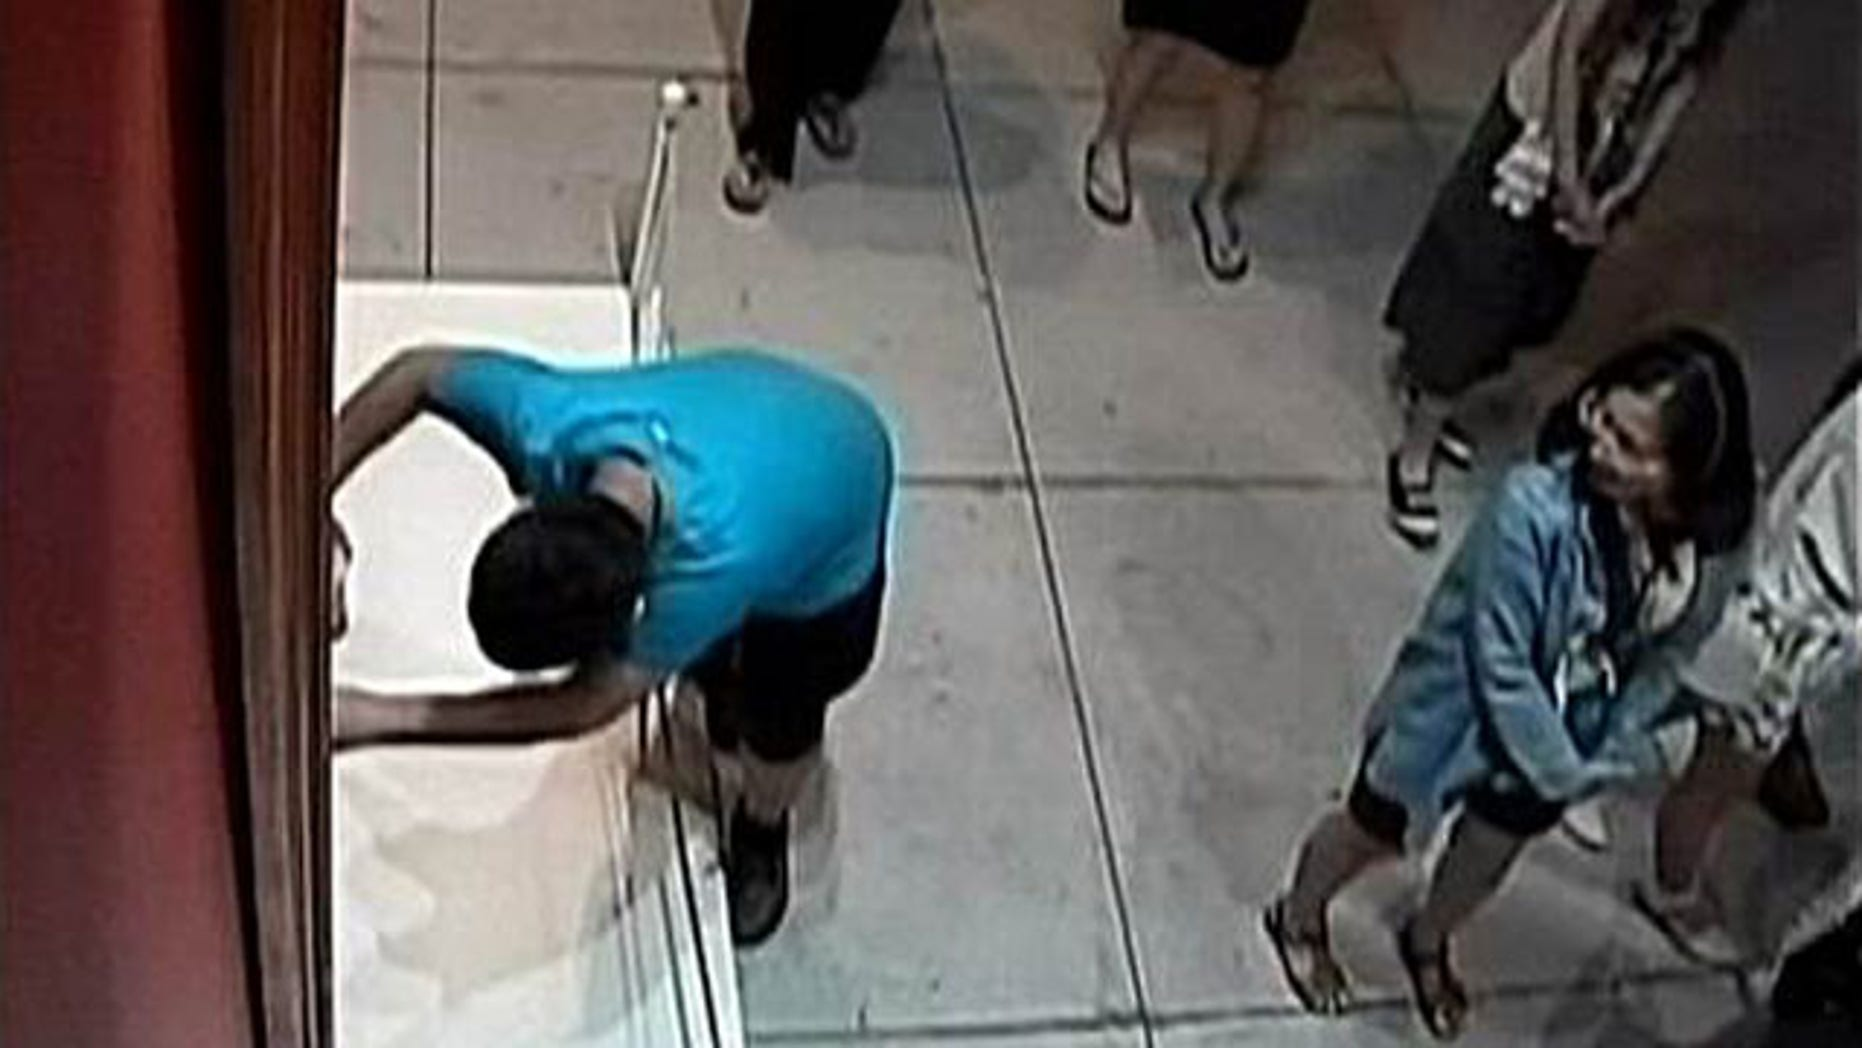 Aug. 23, 2015: In this image taken from security video, an unidentified 12-year-old boy trips and falls, damaging a 17th century Italian painting at an exhibition in Taipei, Taiwan. (Huashan 1914 Creative Park)